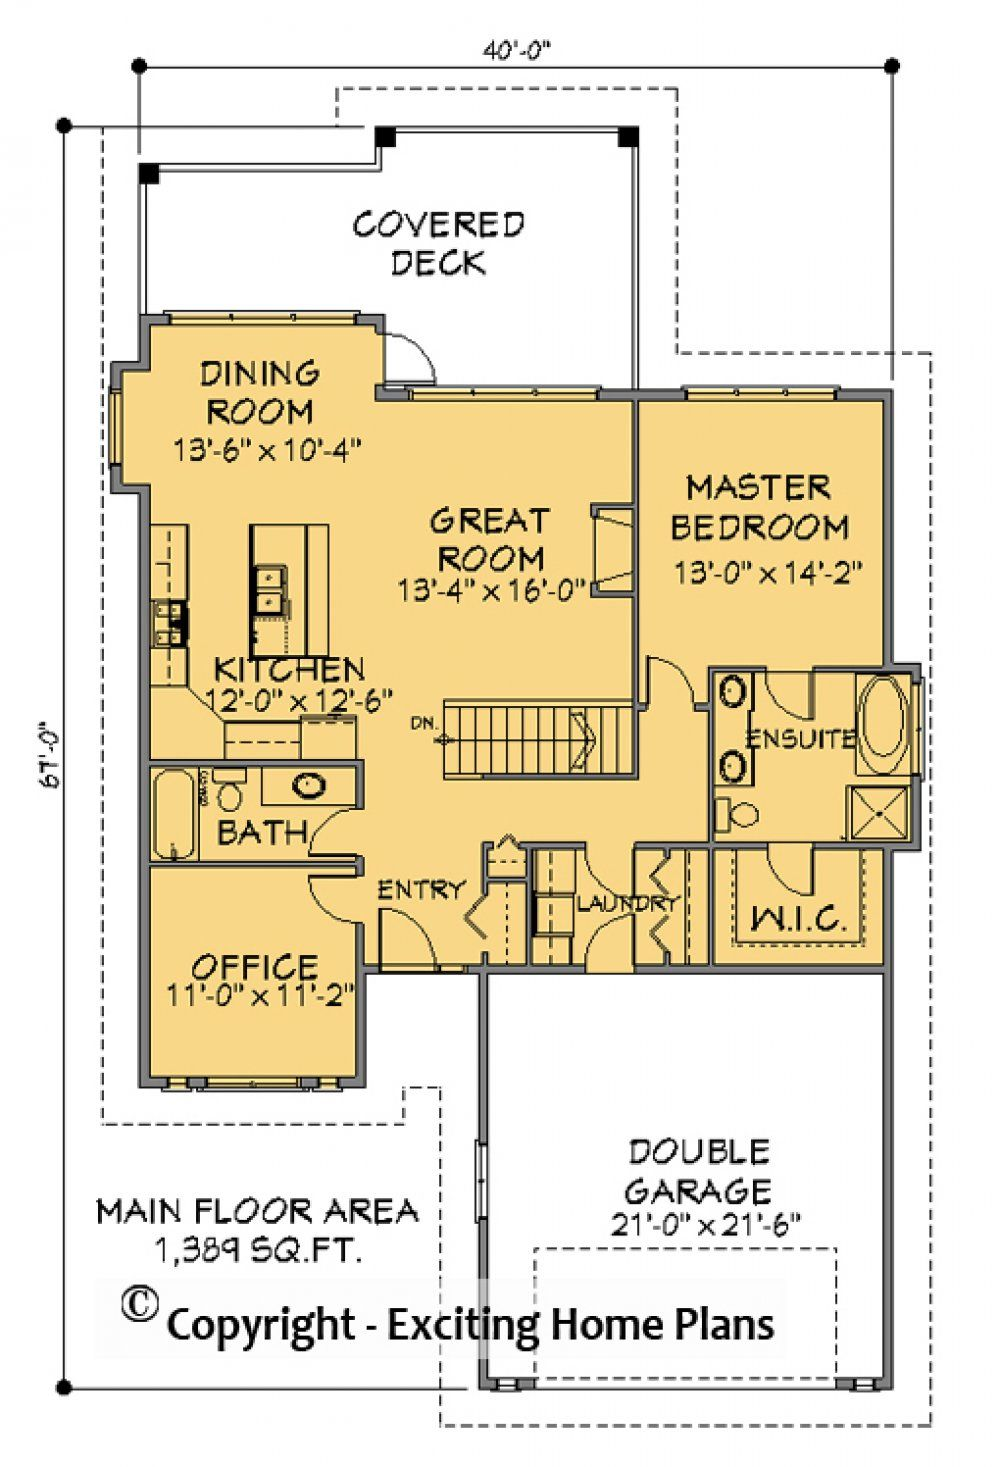 Exciting Home Floor Plans on house plans, garage plans, home bathroom plans, home building, designing home plans, country kitchen home plans, michael daily home plans, home hardware plans, home roof plans, home security plans, home furniture, energy homes plans, group home plans, home plans 1940, home design, 2012 most popular home plans, home lighting plans, family home plans, home architecture, home apartment plans,